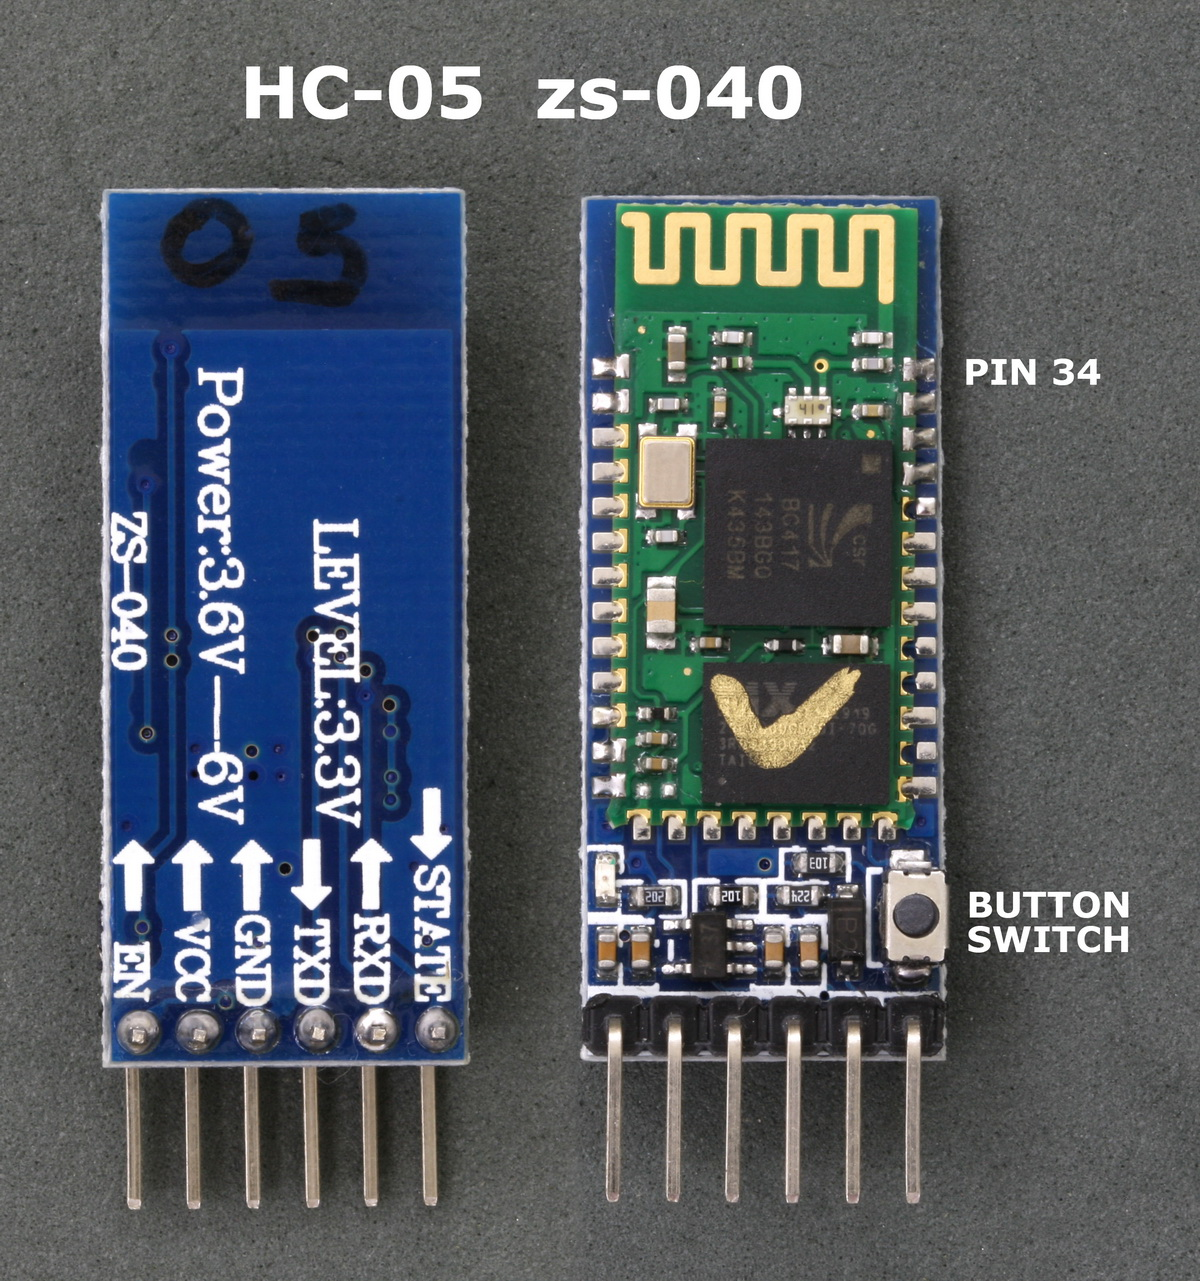 arduino with hc-05 (zs-040) bluetooth module – at mode